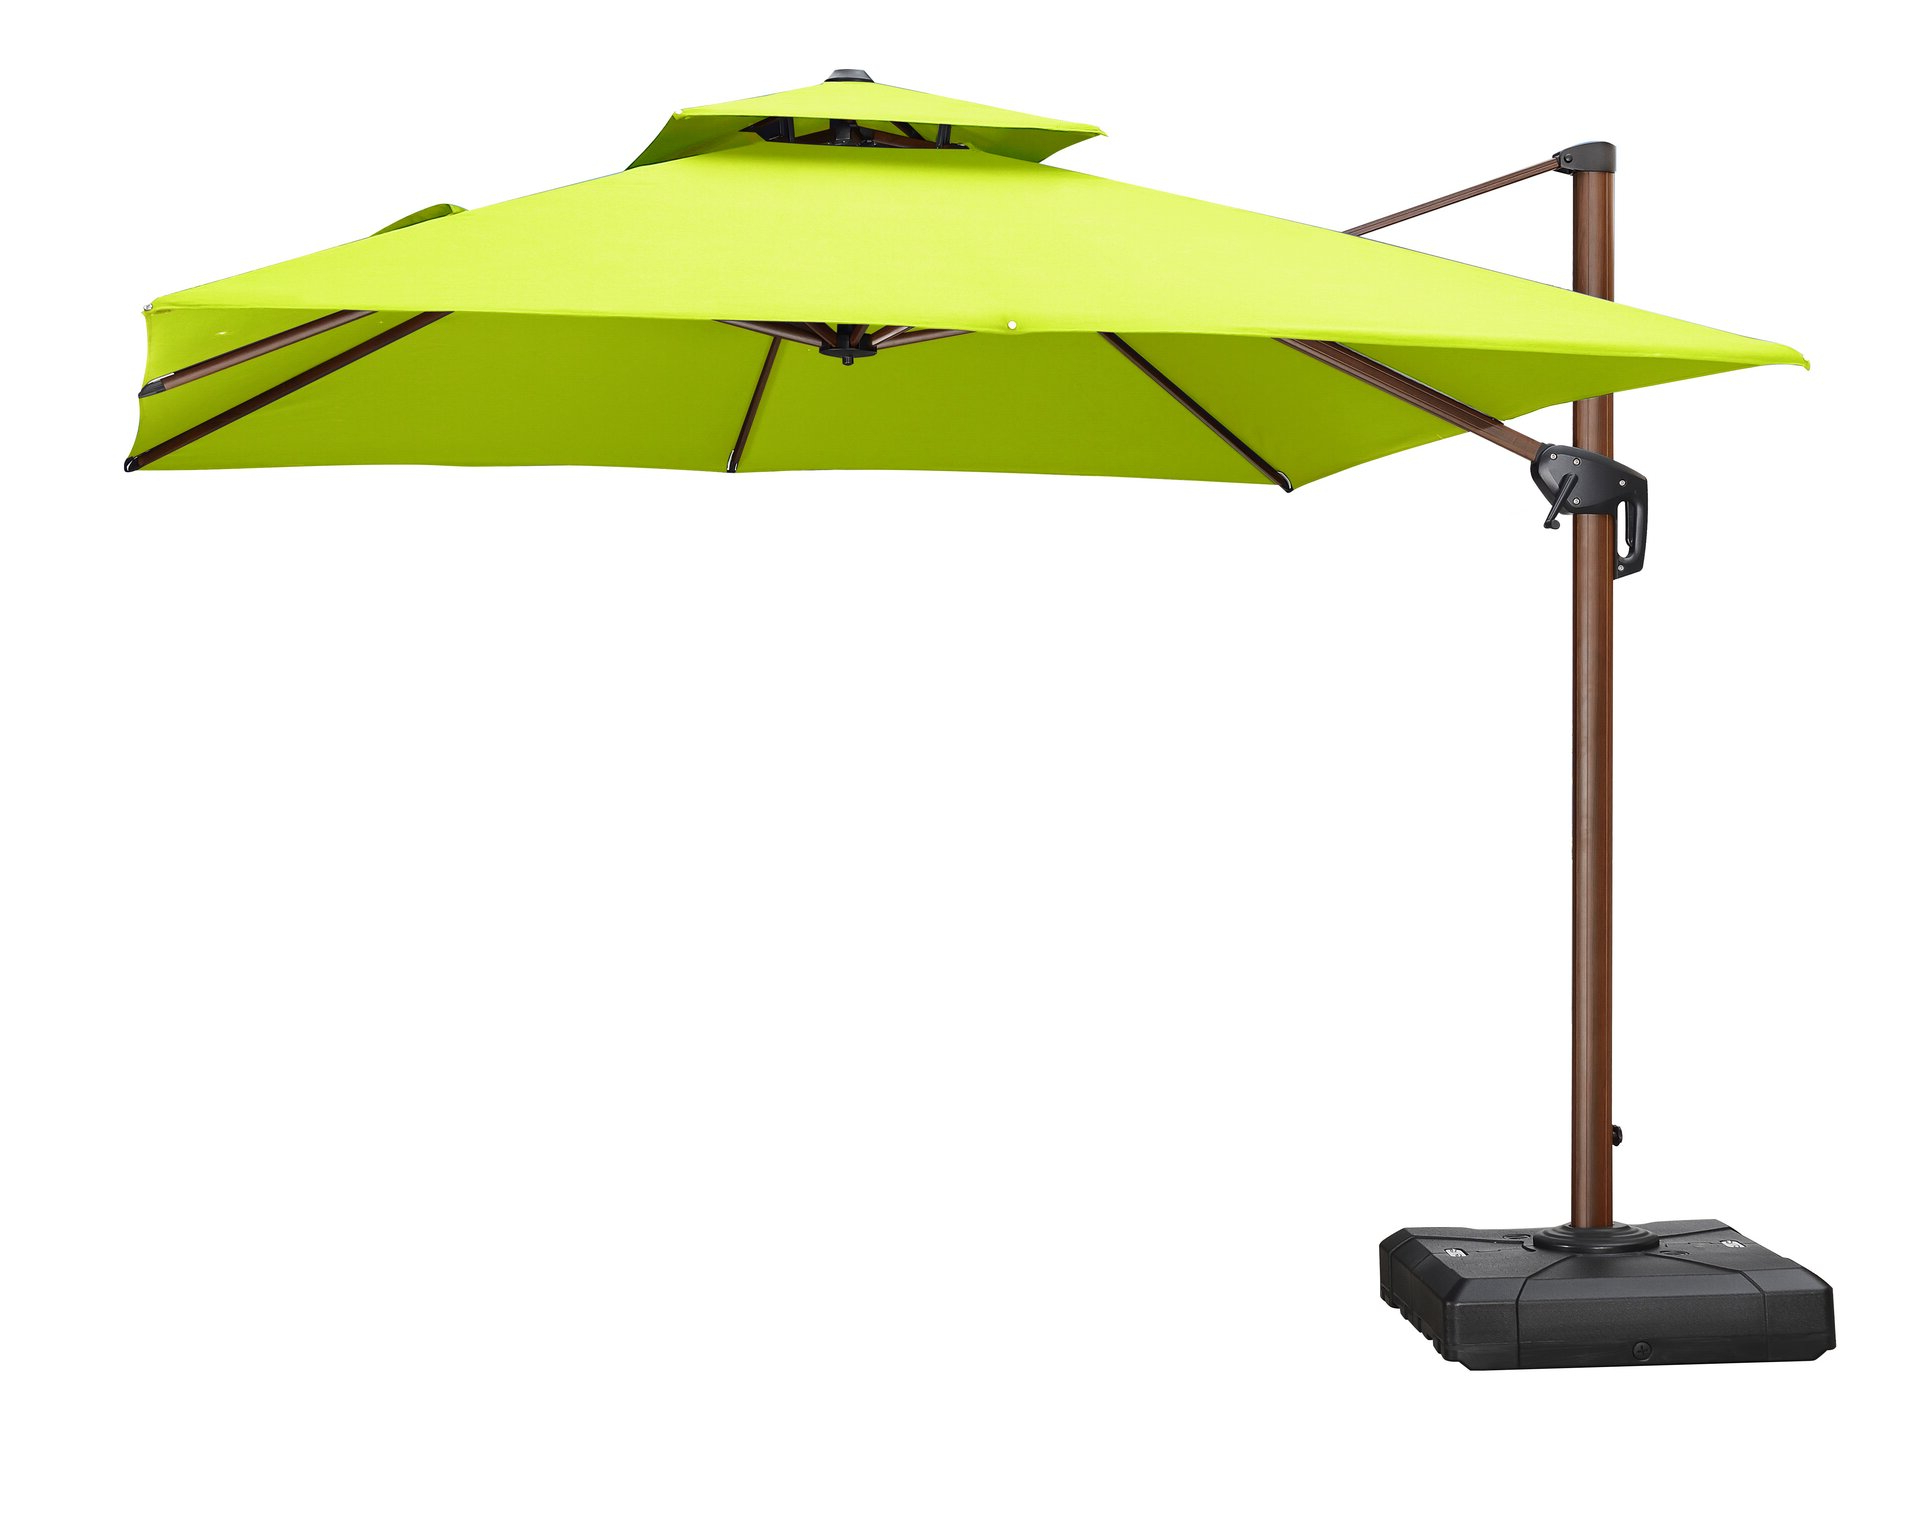 Waddell 10' Square Cantilever Umbrella In Well Liked Maglione Fabric 4cantilever Umbrellas (View 3 of 20)